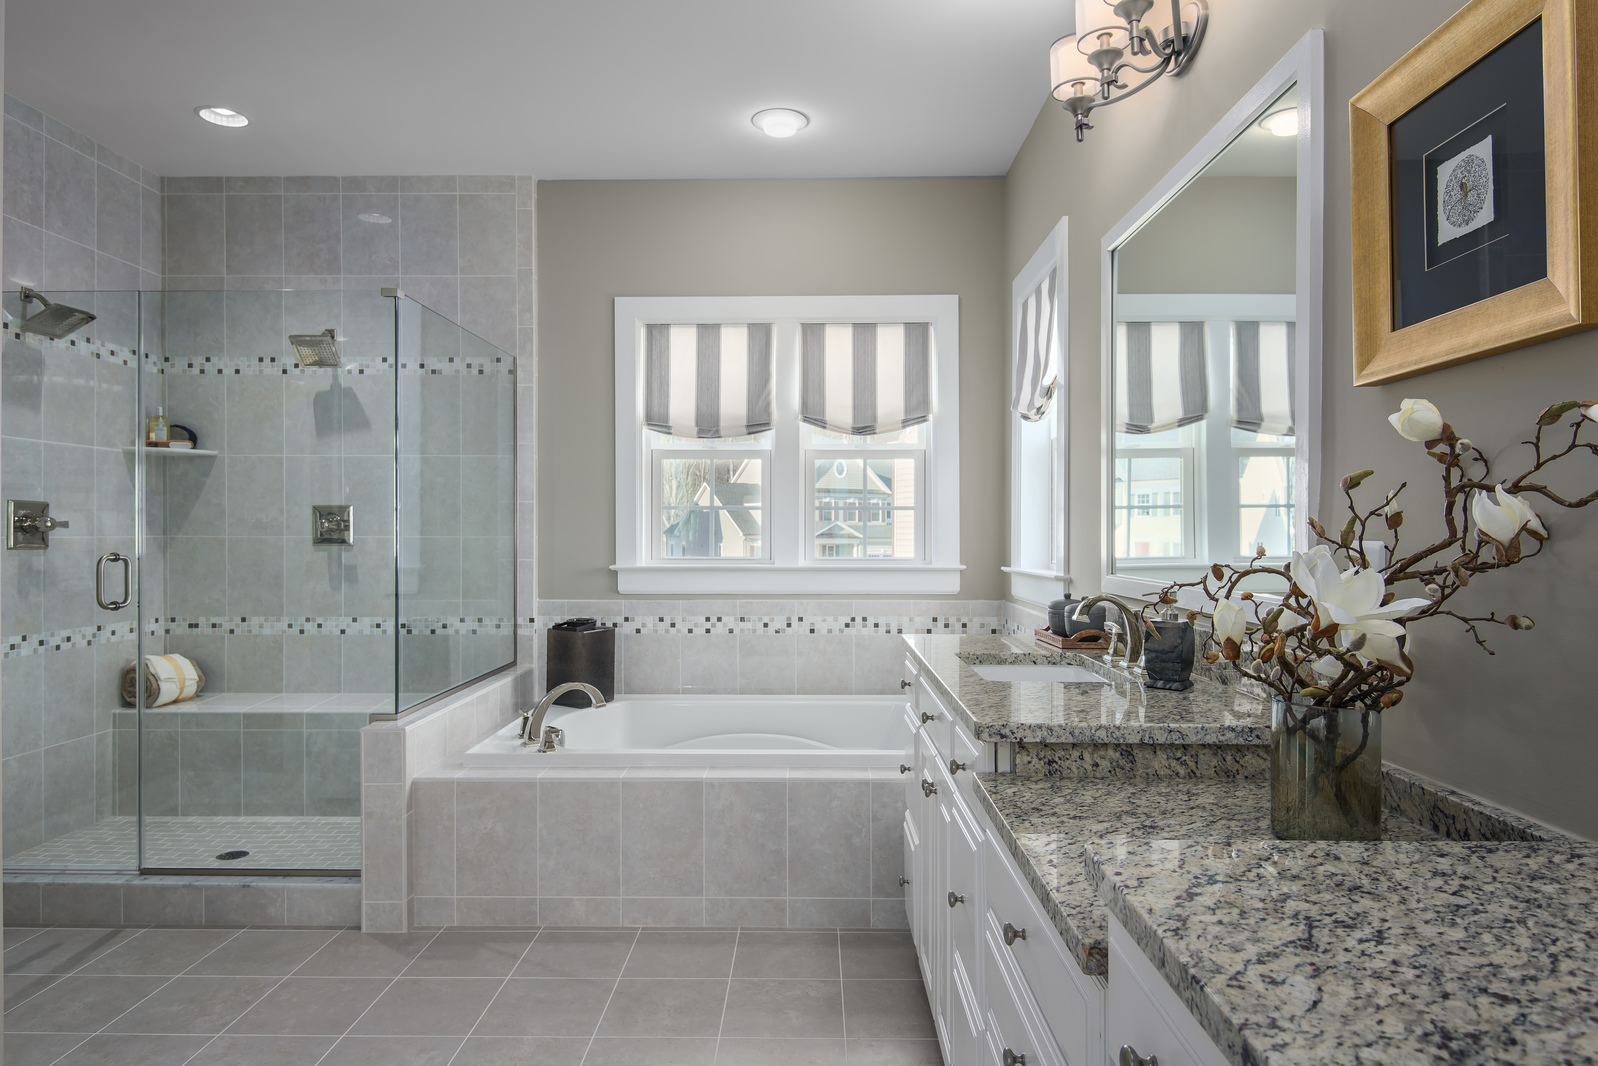 new luxury homes for sale at wincopia farms in north laurel md